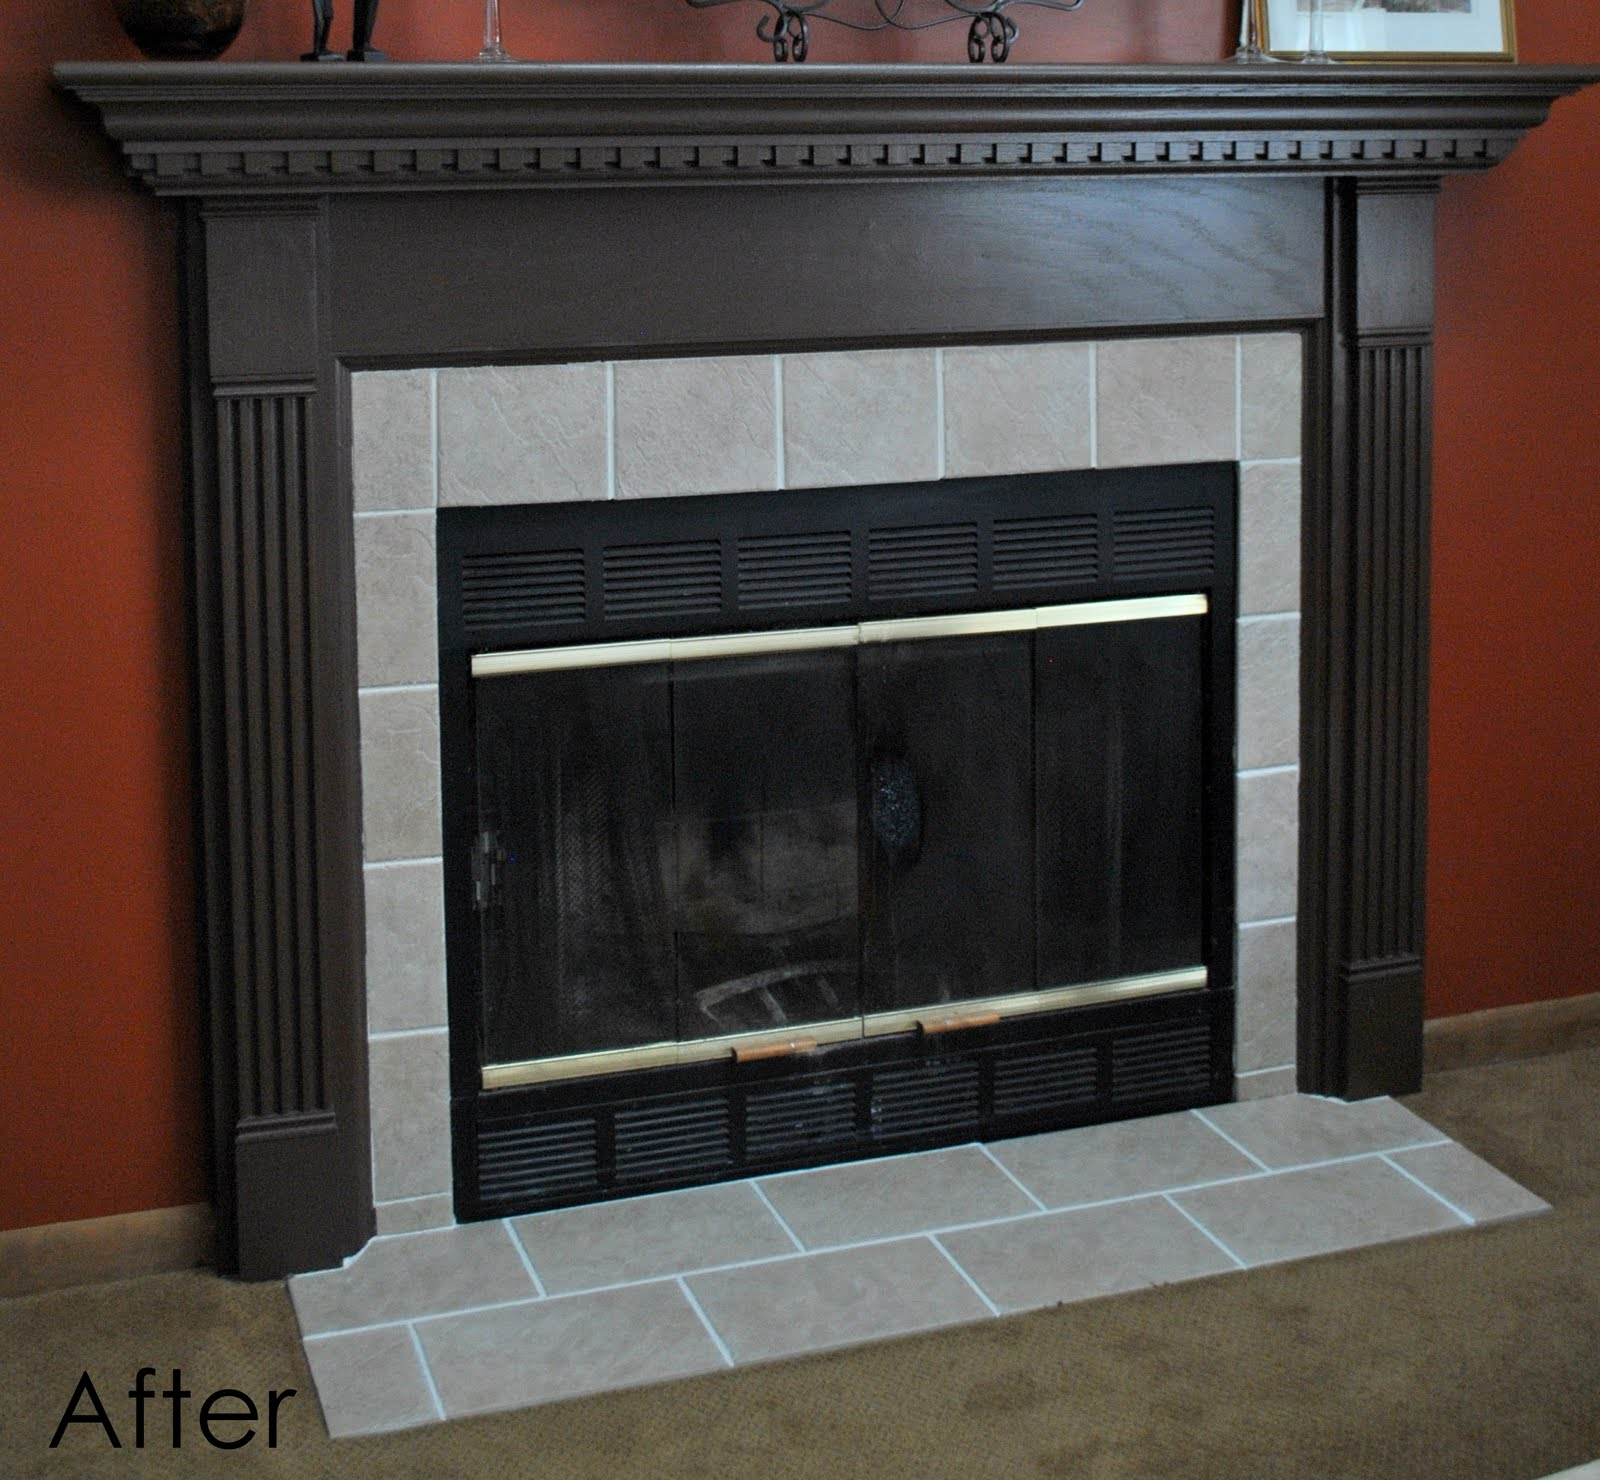 diy fireplace surround - How To Build A Fireplace Surround